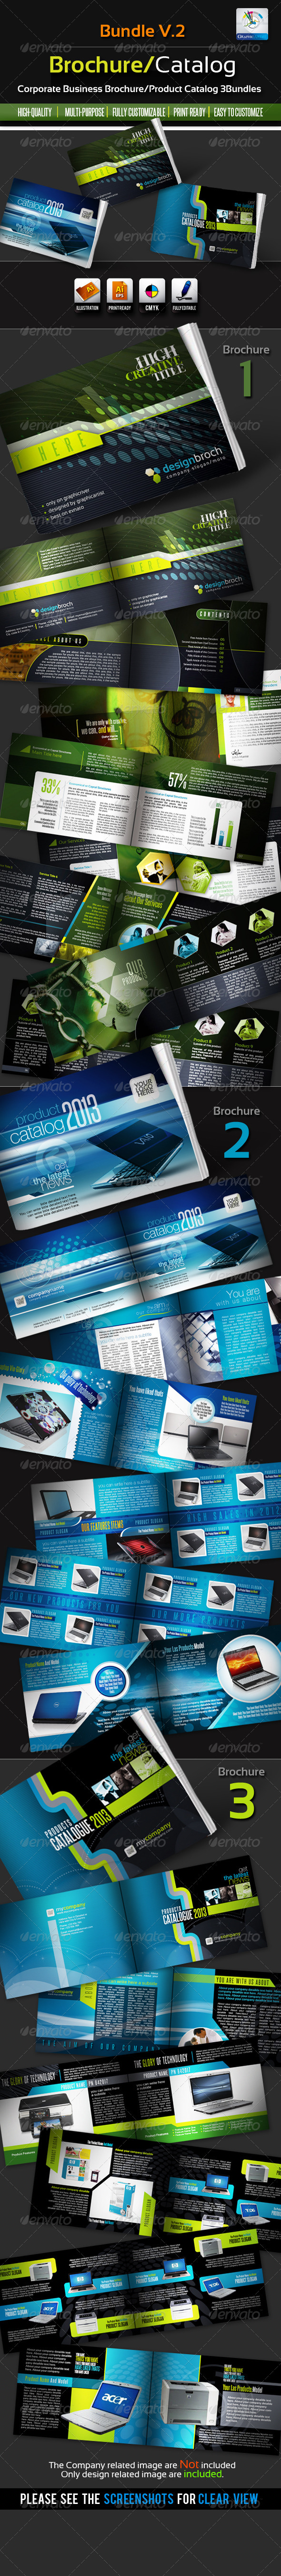 Corporate Brochure/Catalogue Bundles v.2 - Catalogs Brochures